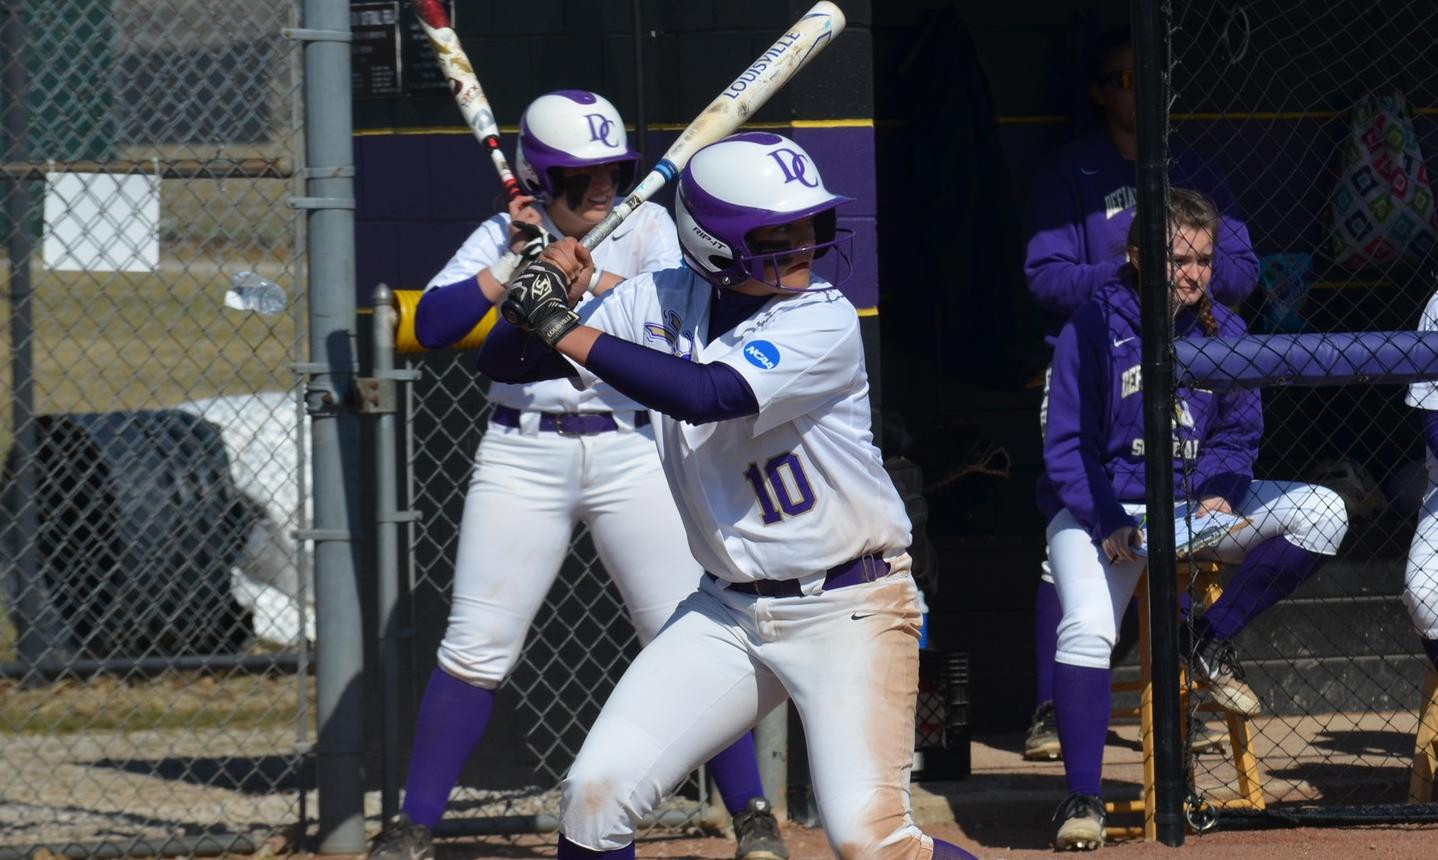 Bauer, Hubble Homer to Lead Softball to Sweep of Rose-Hulman